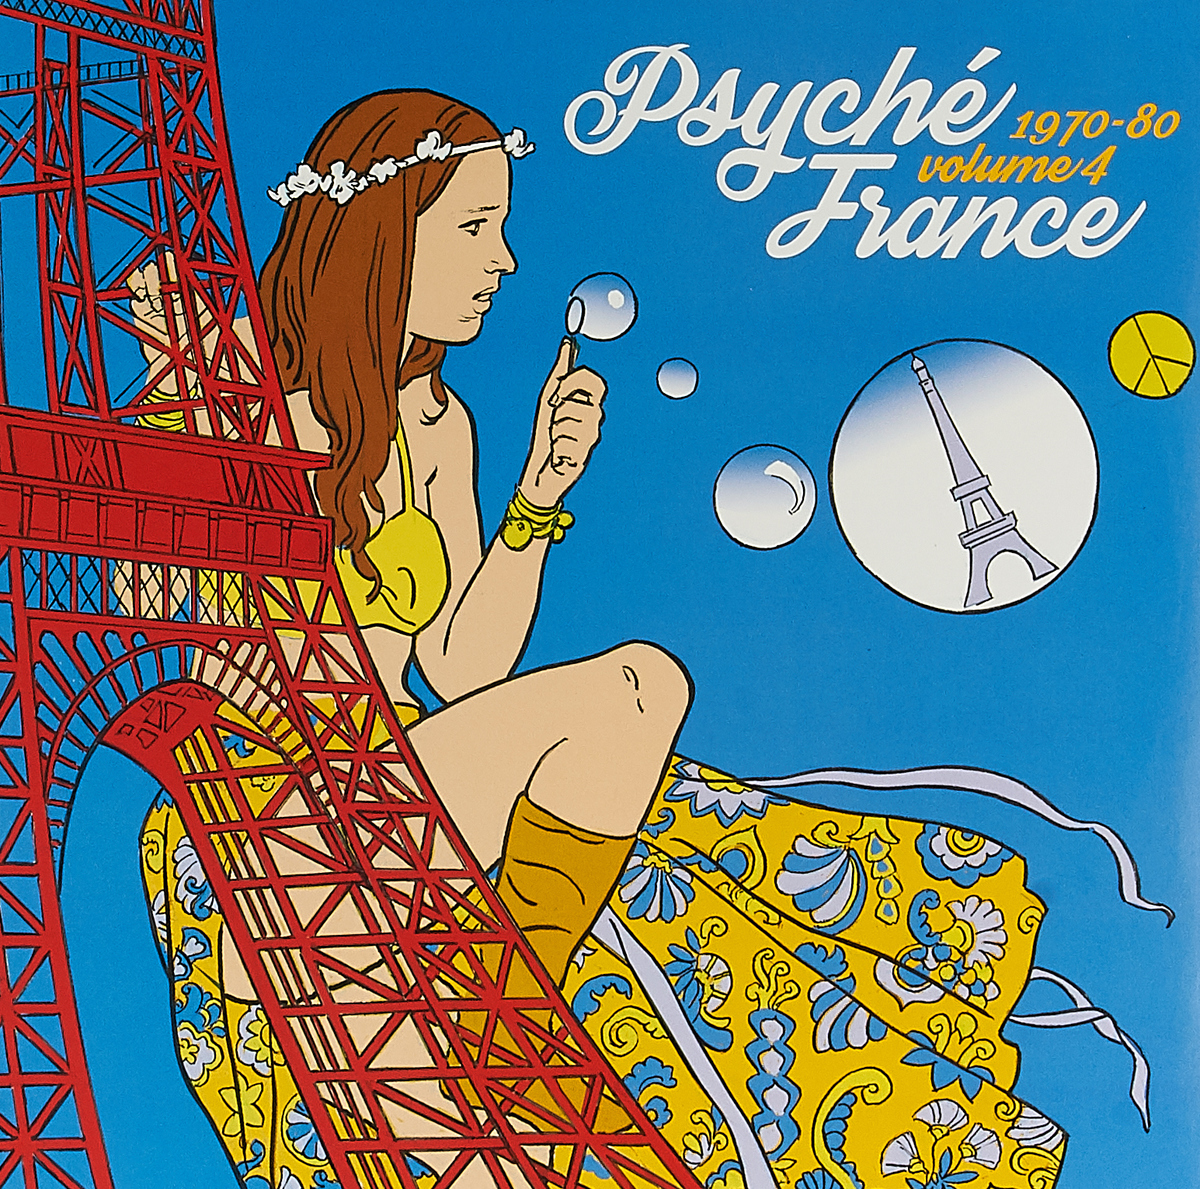 Psyche France 1970-80 Volume 4 (LP)